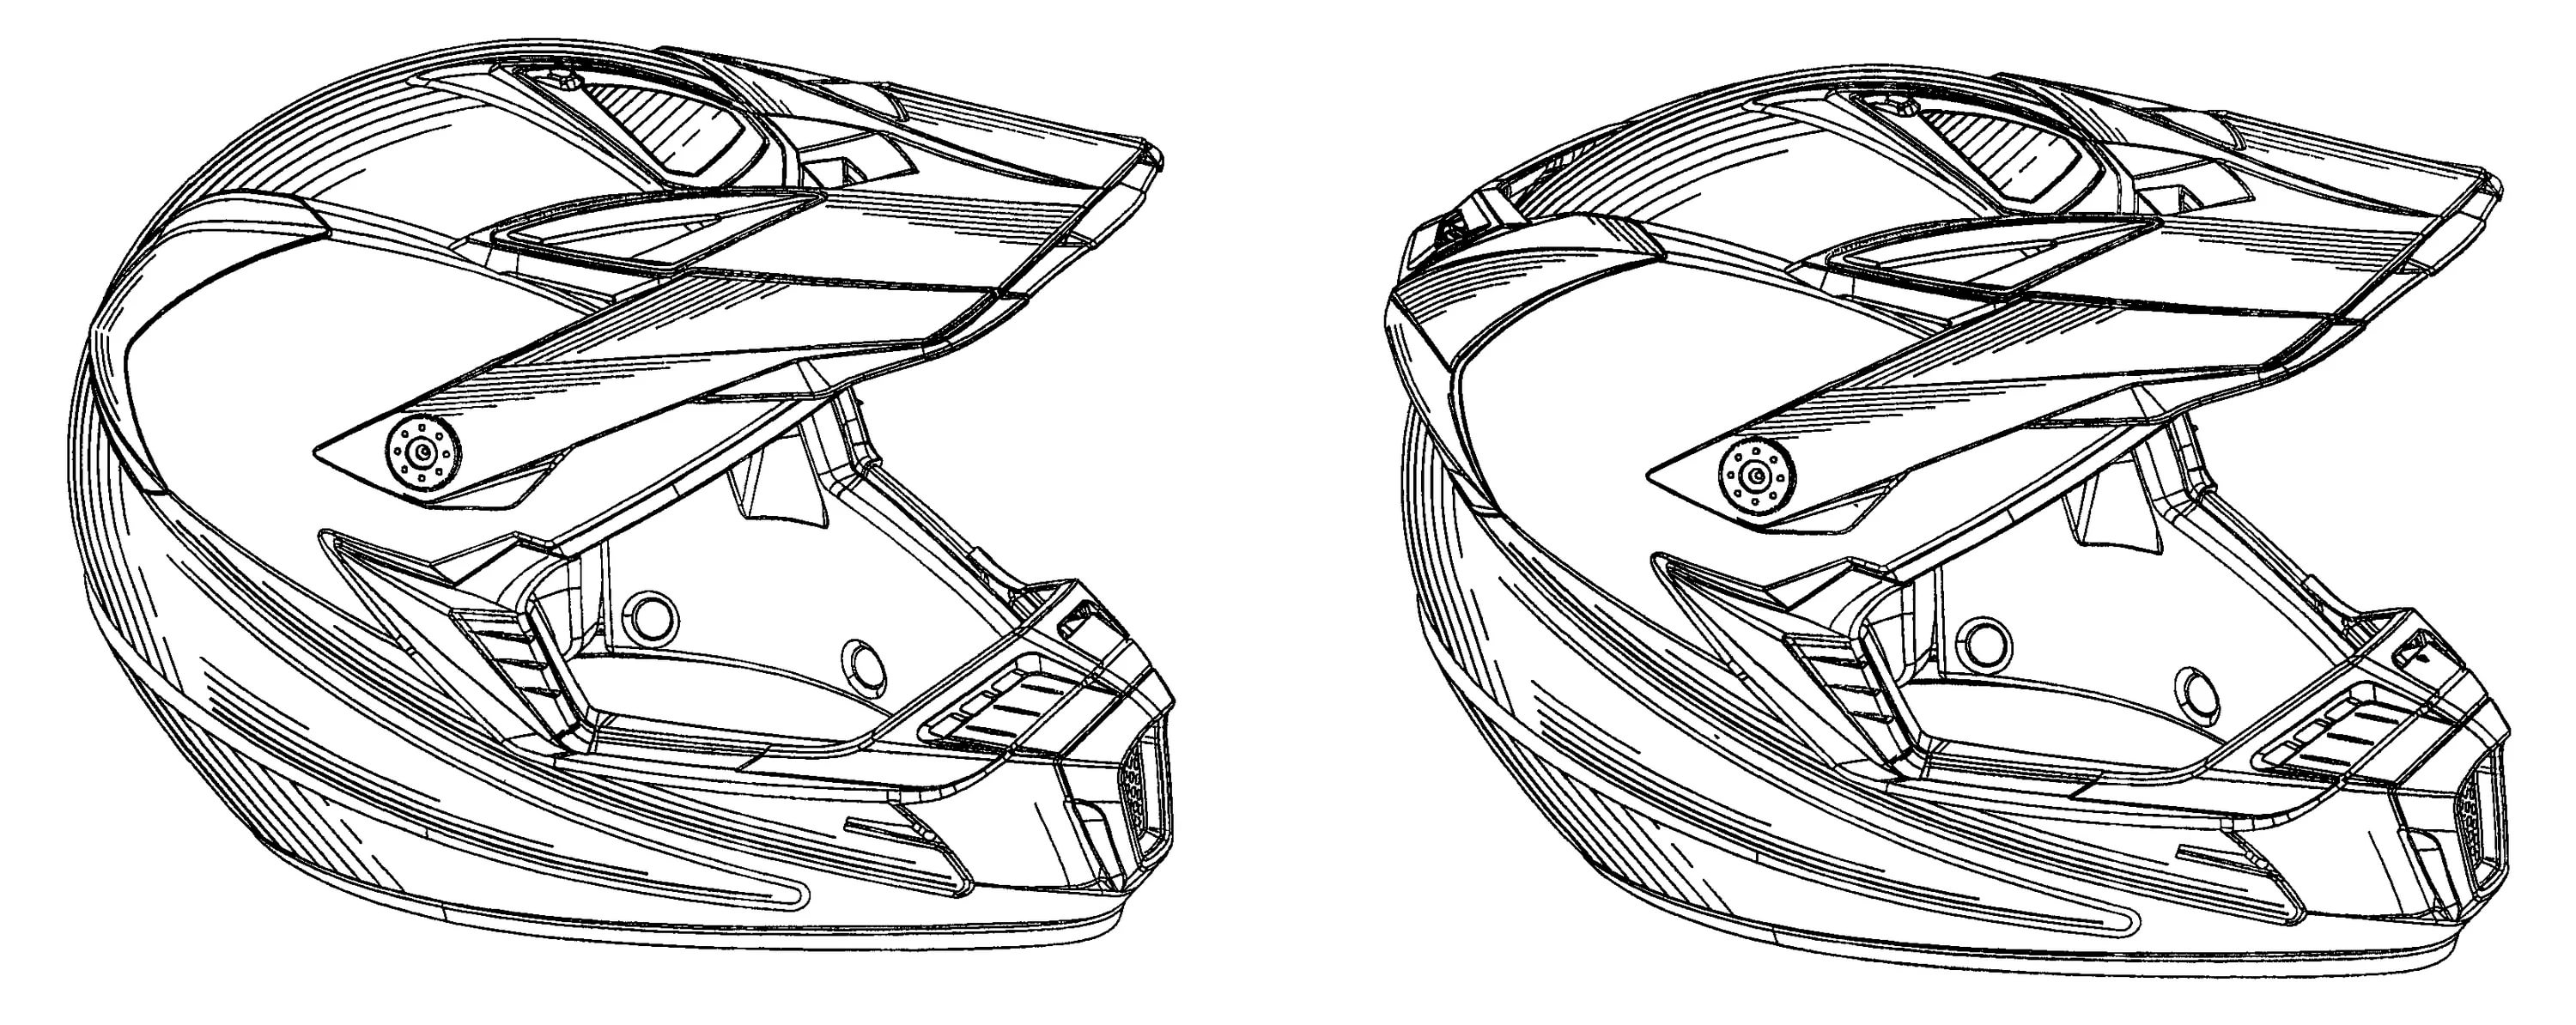 Motorcycle Coloring Pages For Kids. Free Printable